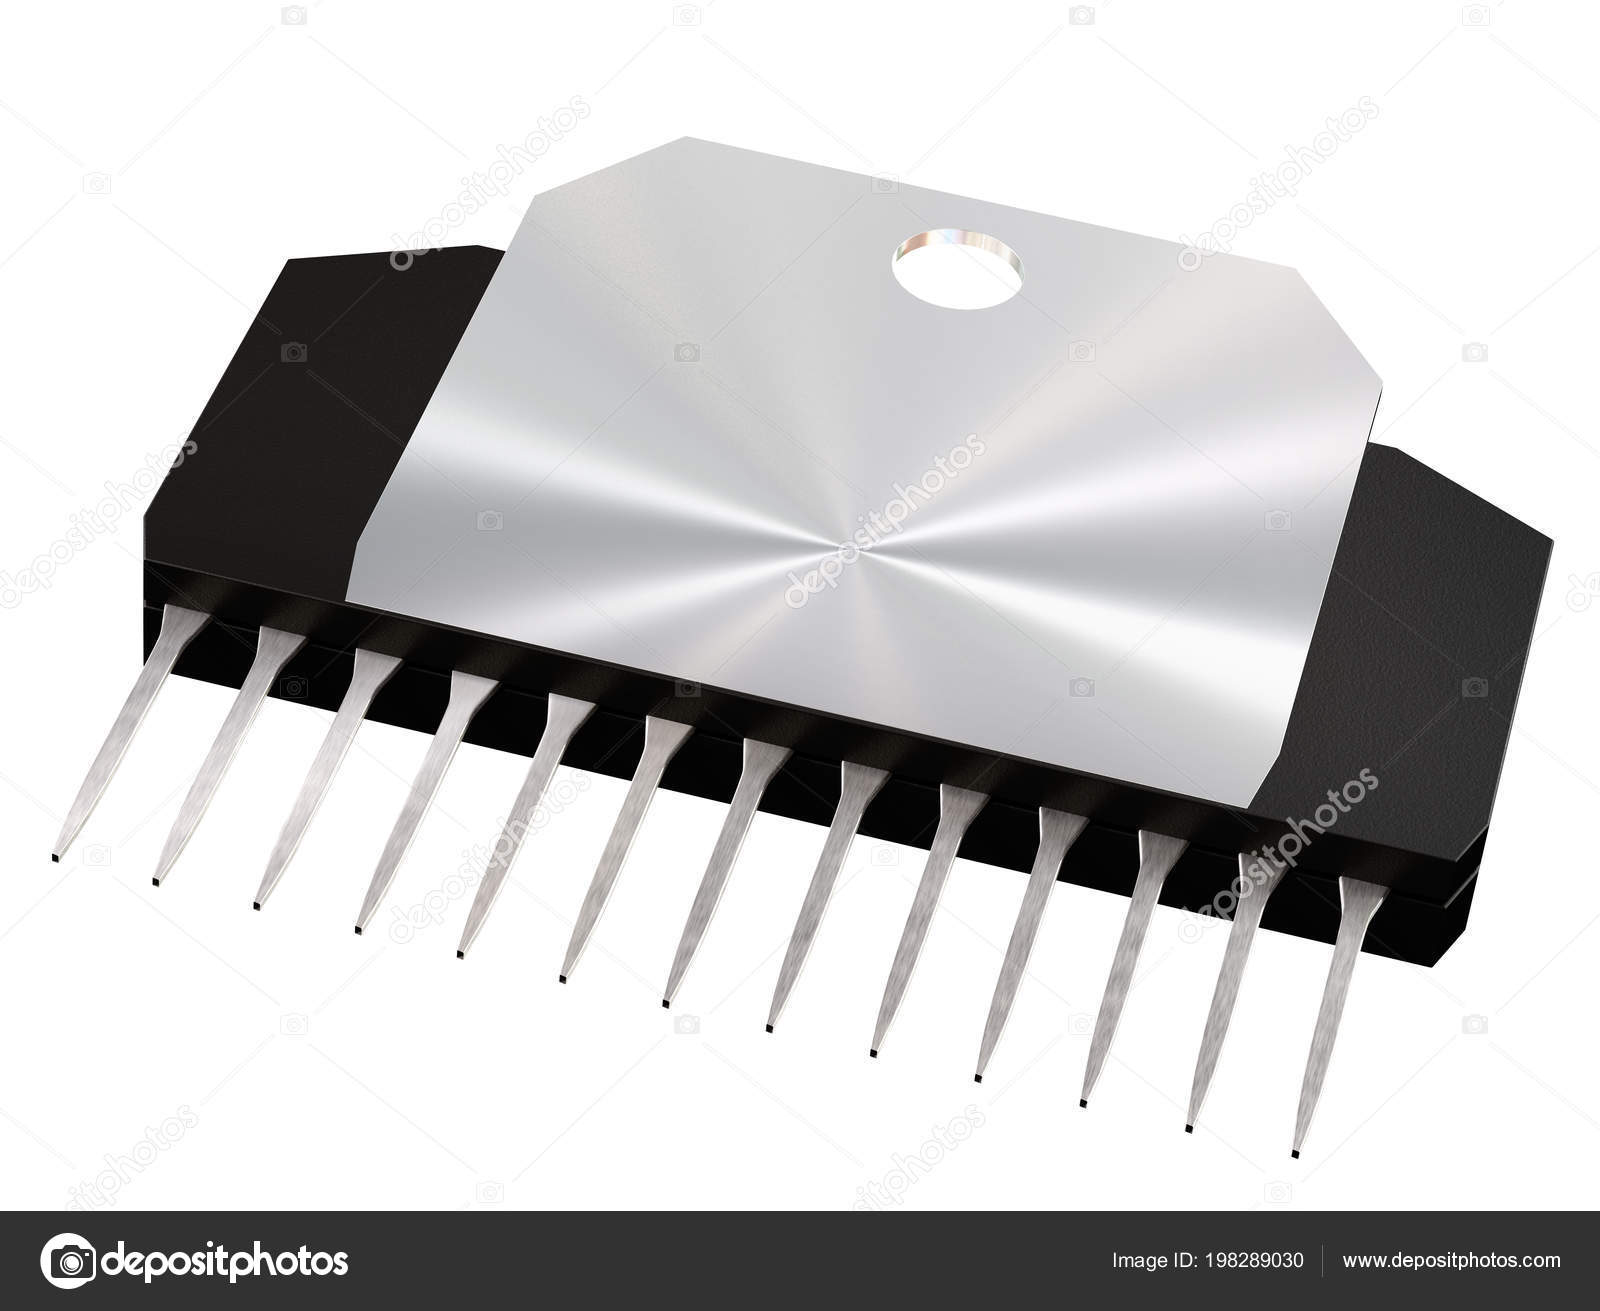 Integrated Circuit Or Micro Chip And New Technologies On Isolated Electronic Royalty Free Stock Image Photo